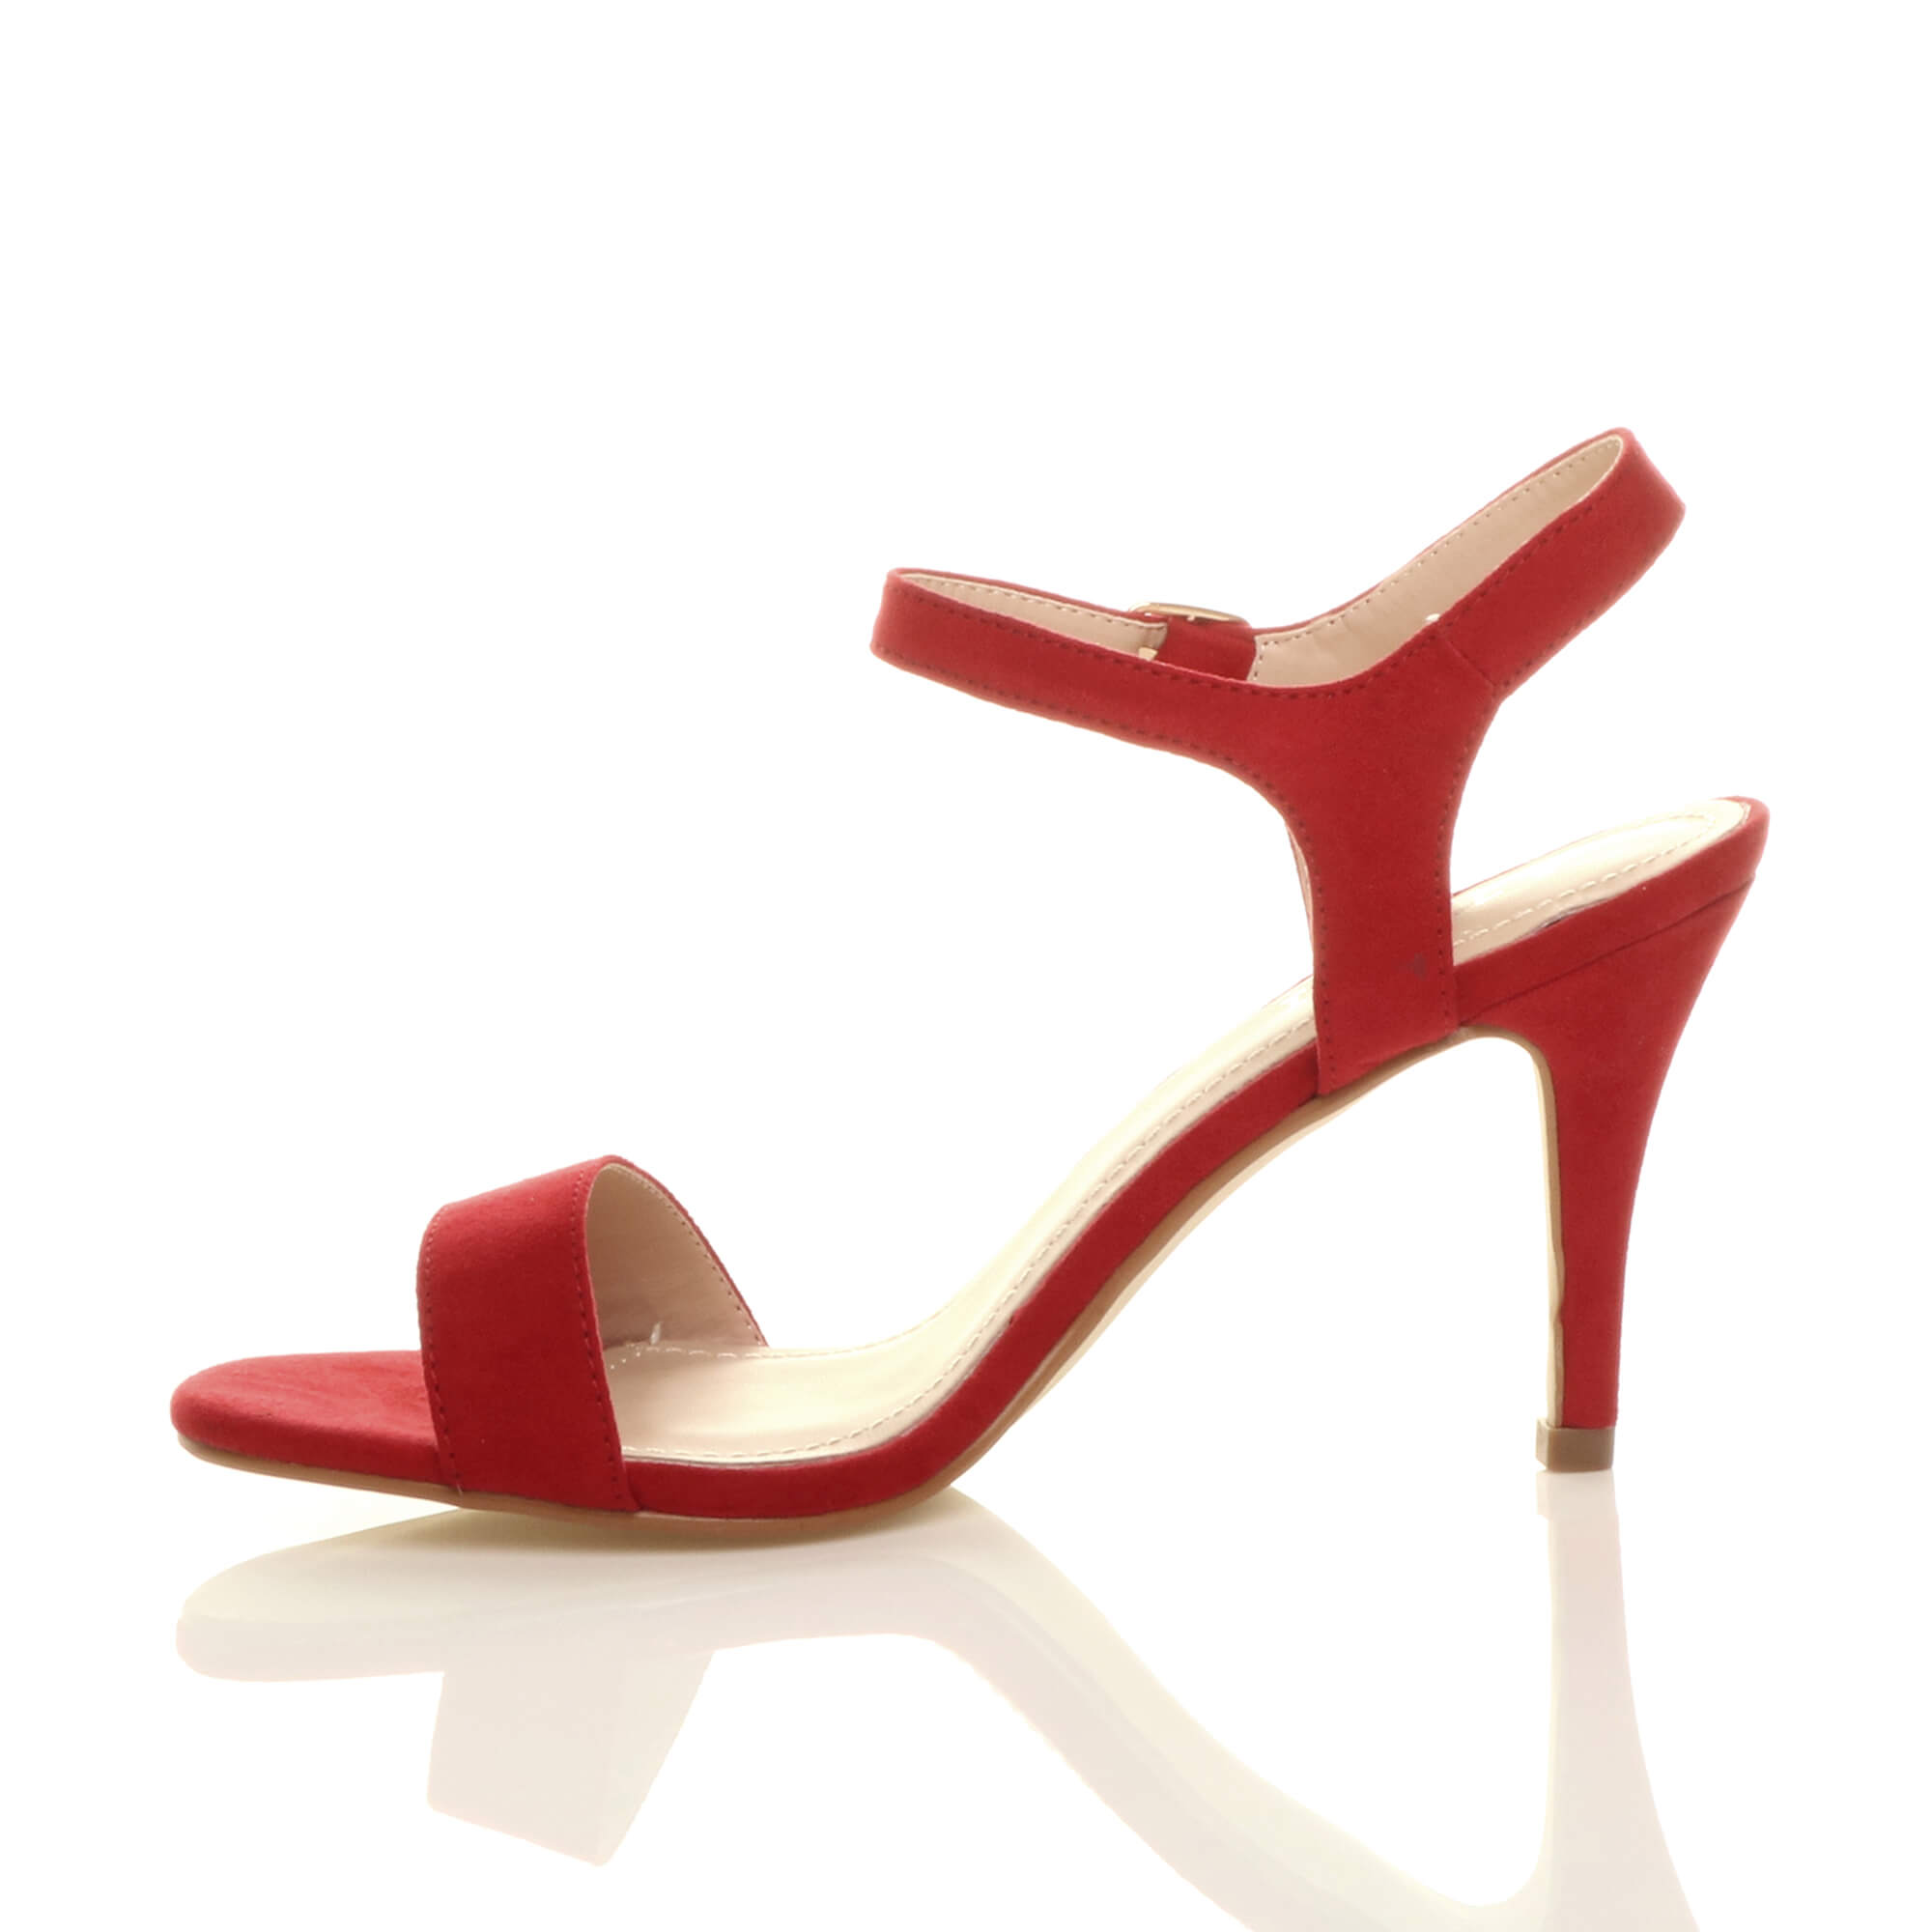 WOMENS-LADIES-HIGH-HEEL-BUCKLE-STRAPPY-BASIC-BARELY-THERE-SANDALS-SHOES-SIZE thumbnail 116